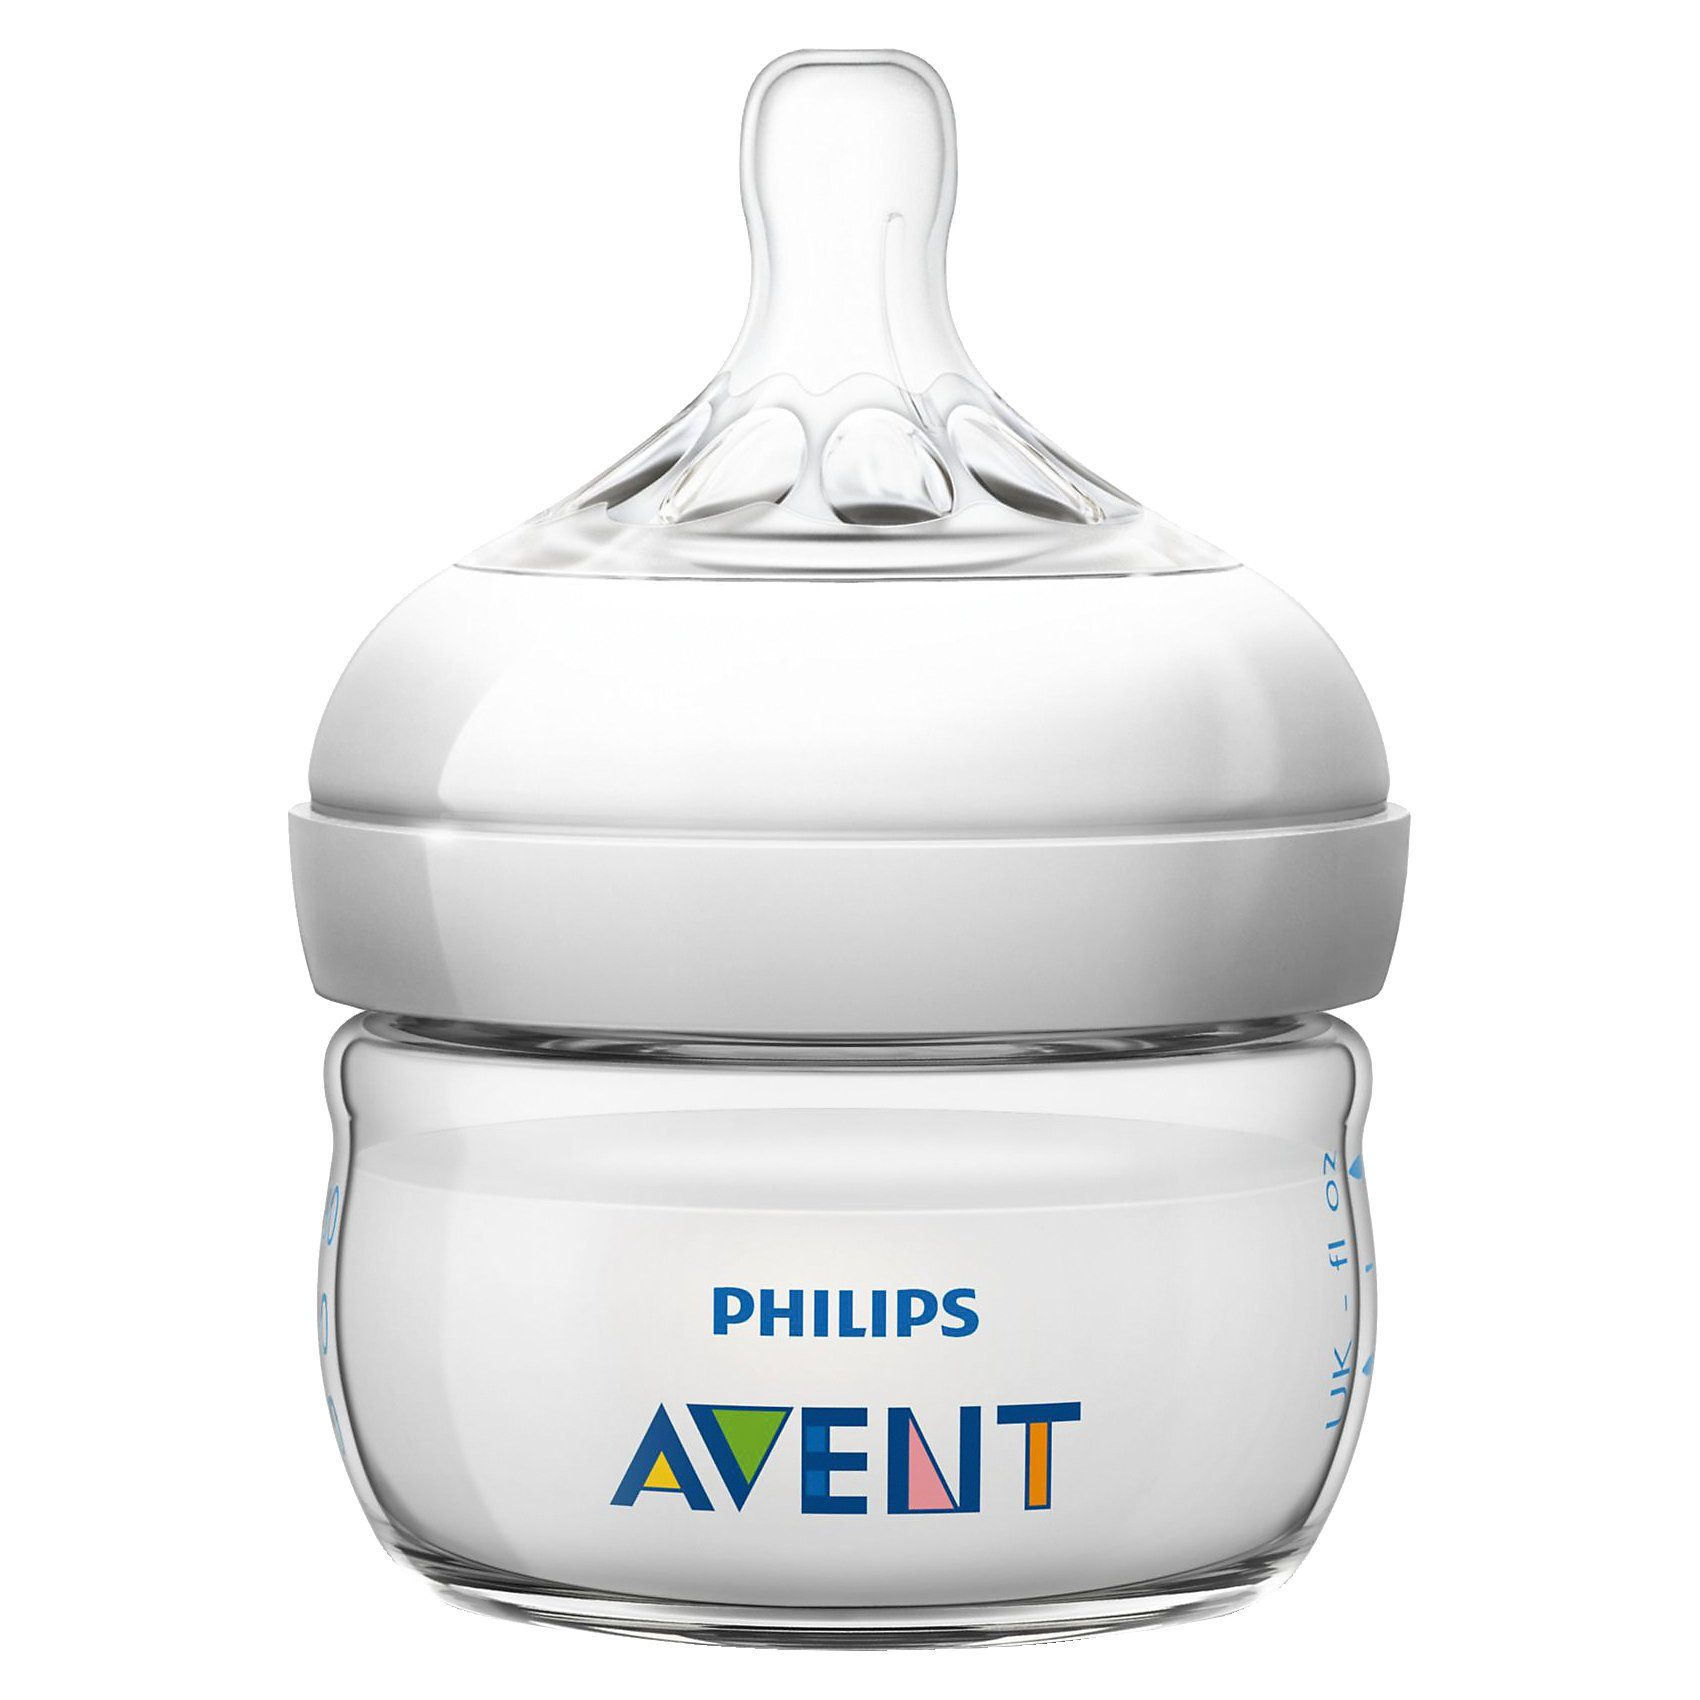 PHILIPS AVENT Weithals Flasche Naturnah, PP, Silikonsauger, 60 ml